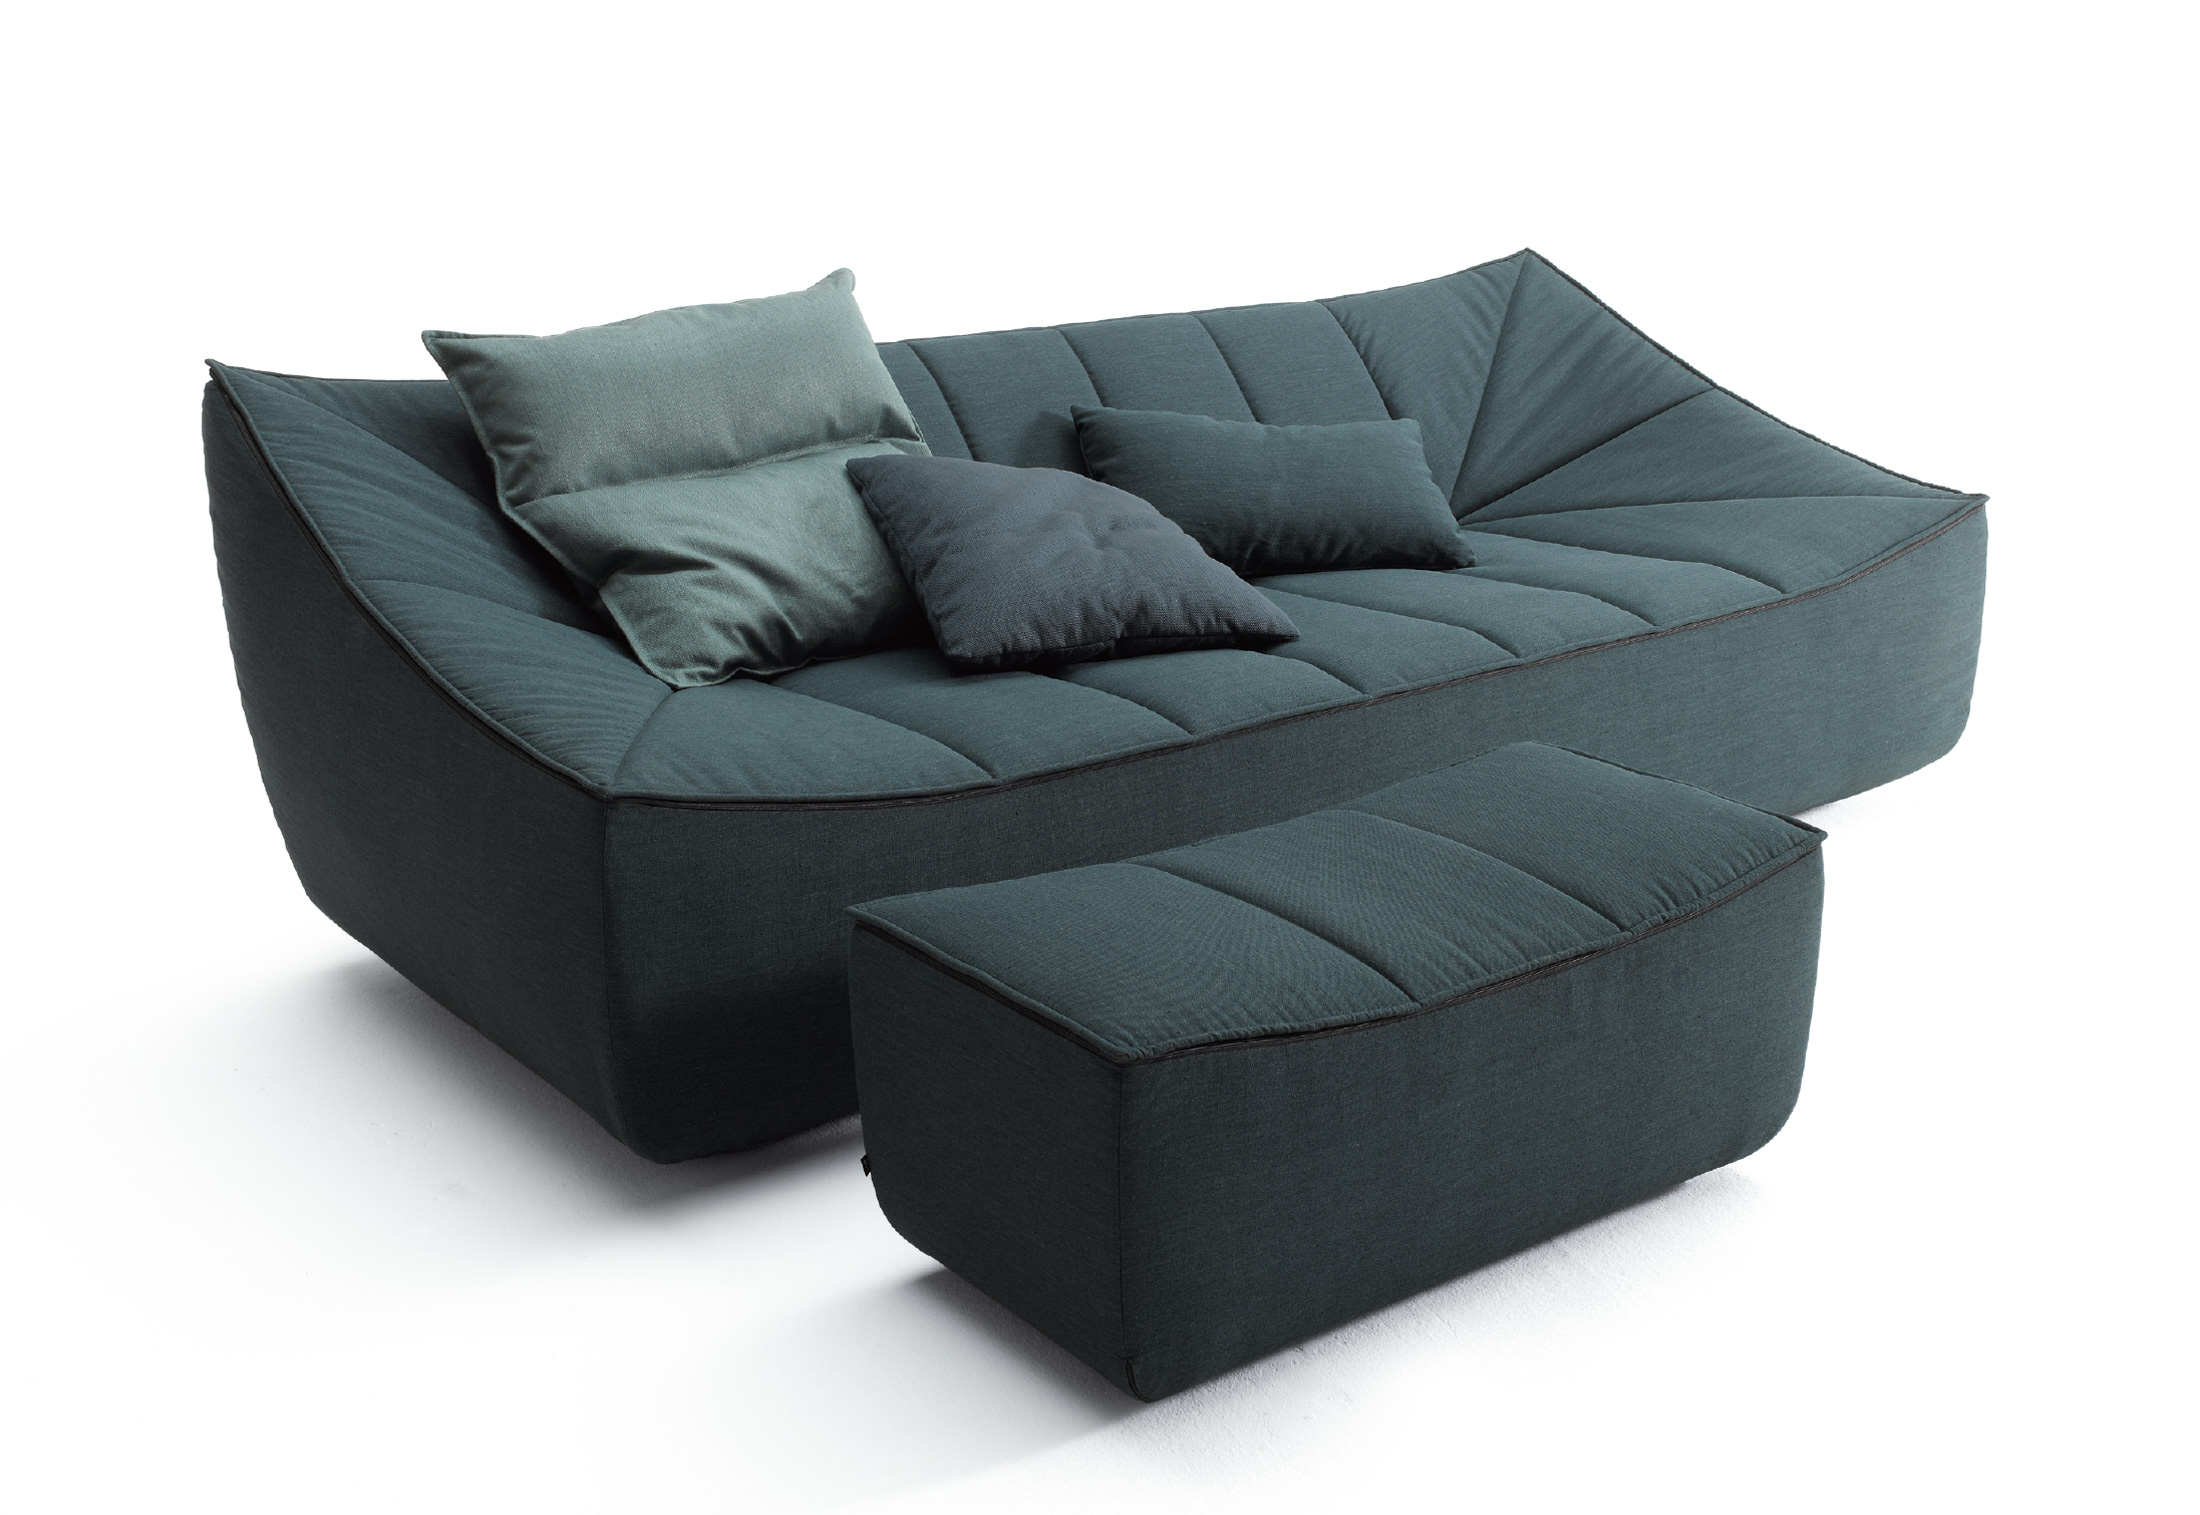 bahir sofa by j rg boner for cor sohomod blog. Black Bedroom Furniture Sets. Home Design Ideas